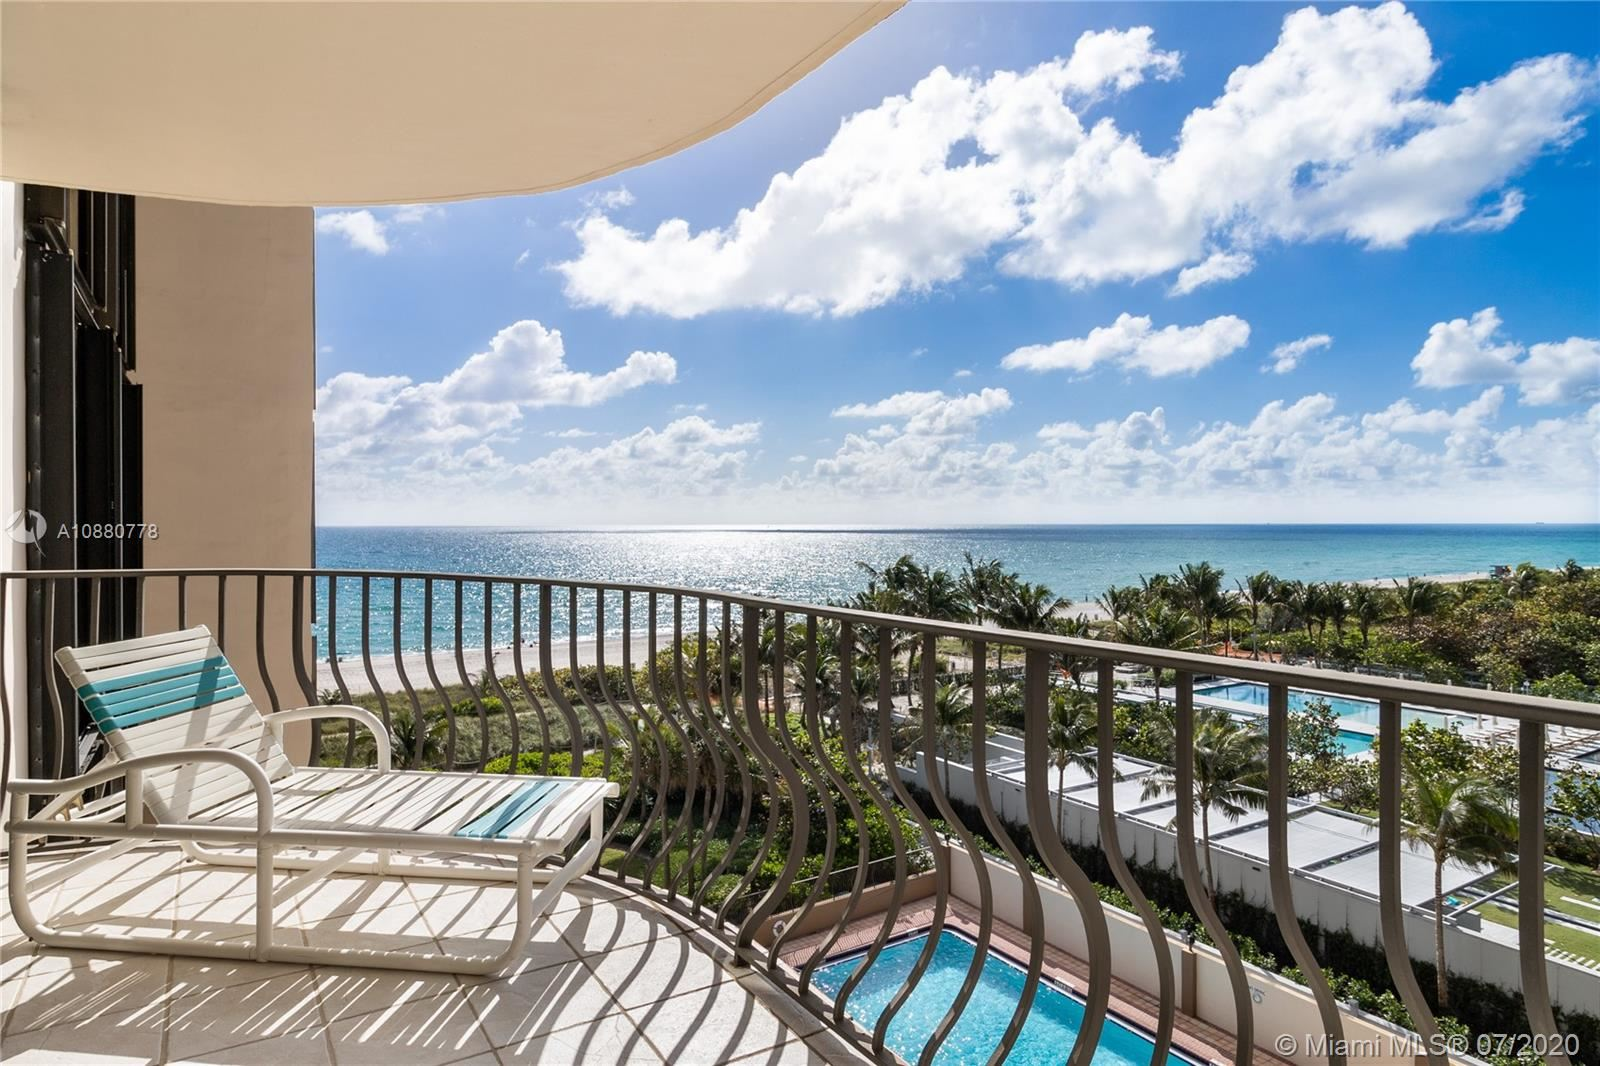 8777 Collins Ave #611, Surfside, FL 33154 - #: A10880778